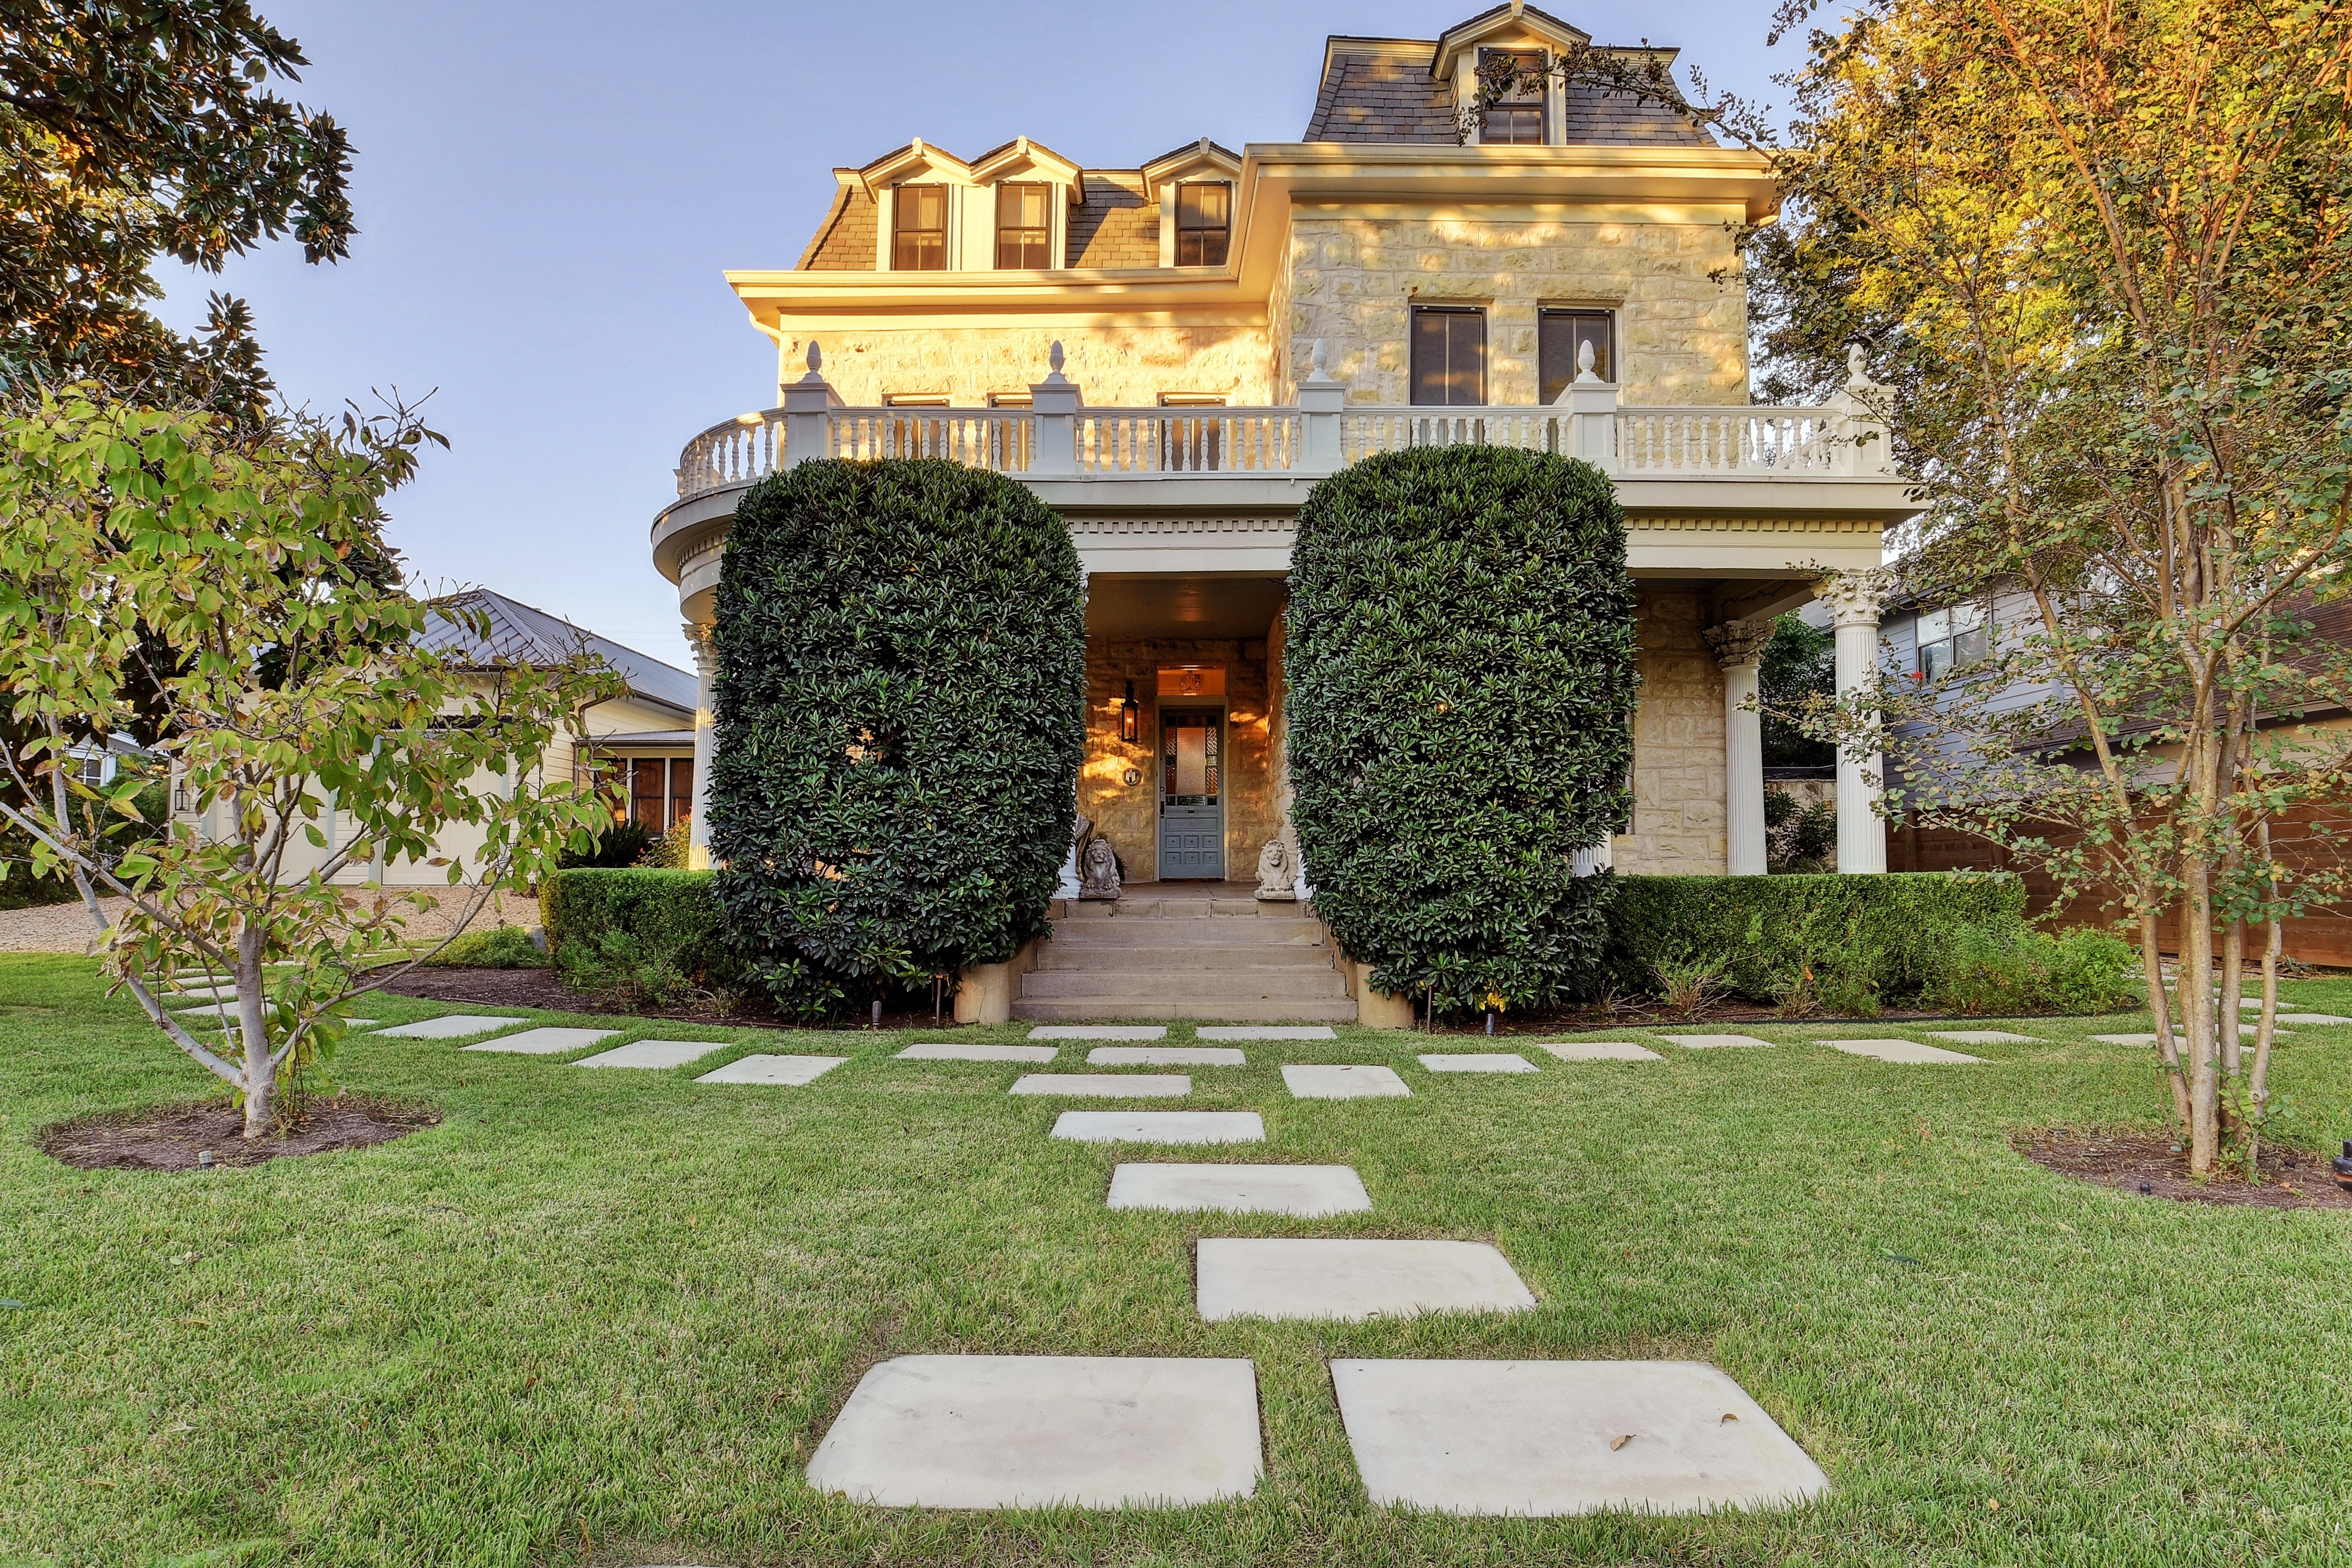 Photo of grand two-story home built in 1898